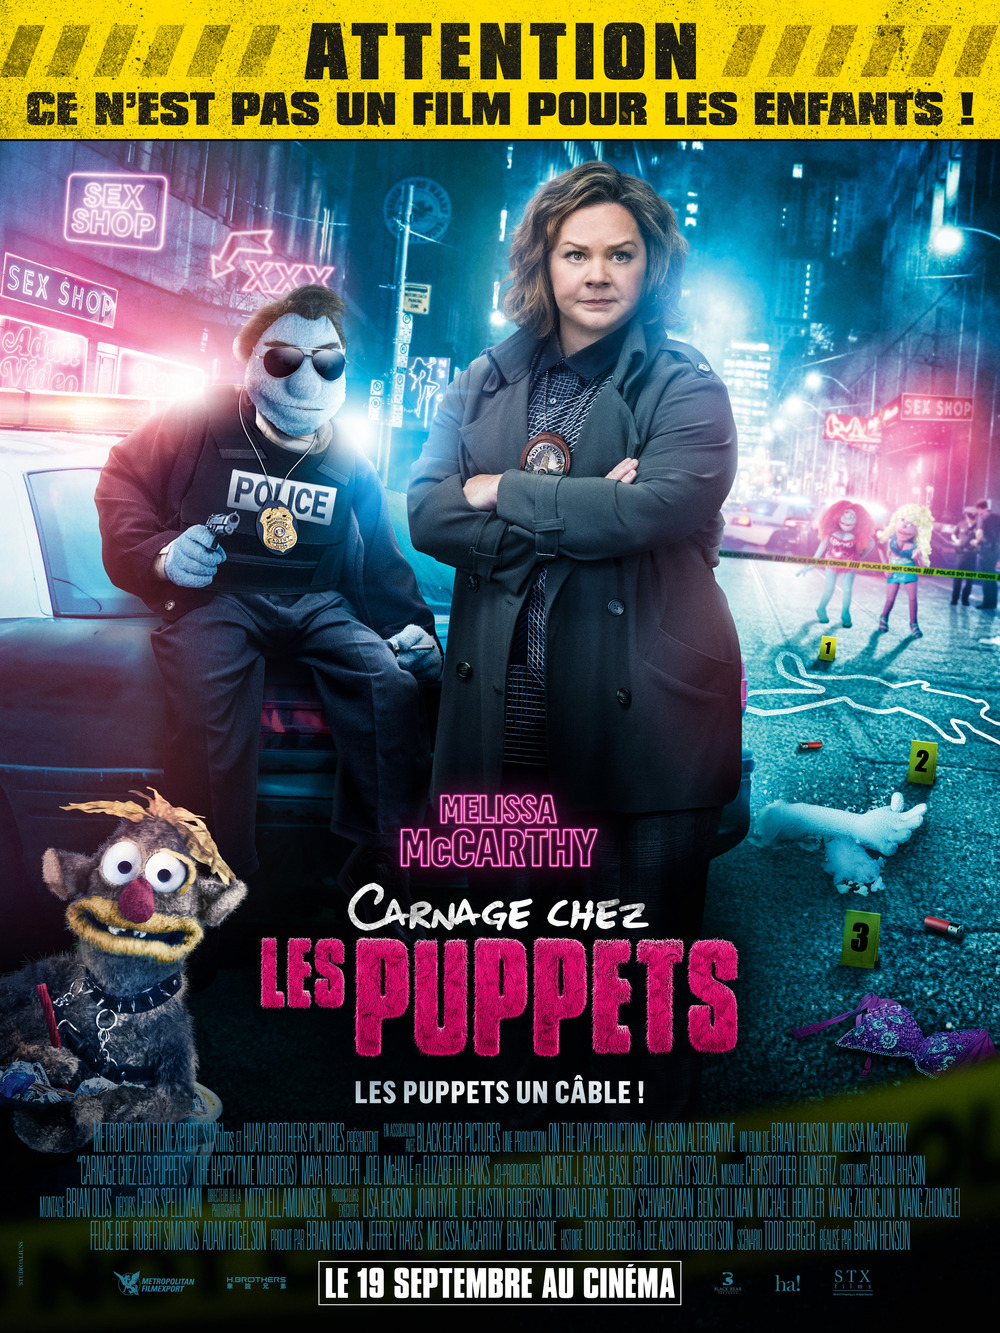 The New French Teenage Fashion Collection Une Fille From: The Happytime Murders DVD Release Date